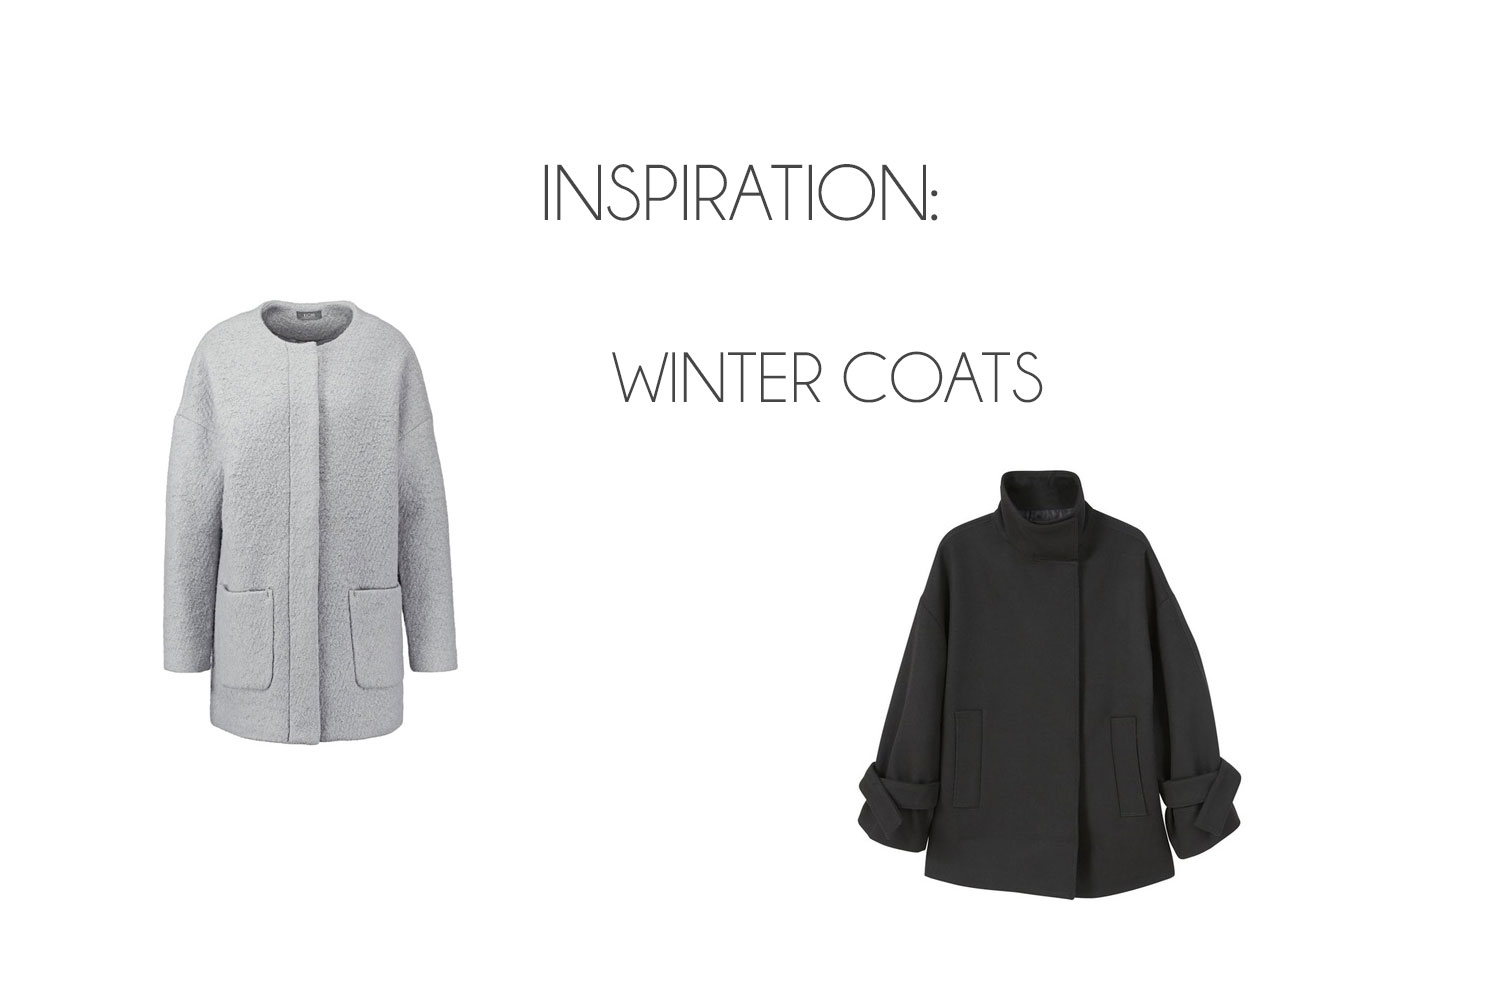 5 Things that Rocked my World in January - Winter Coats